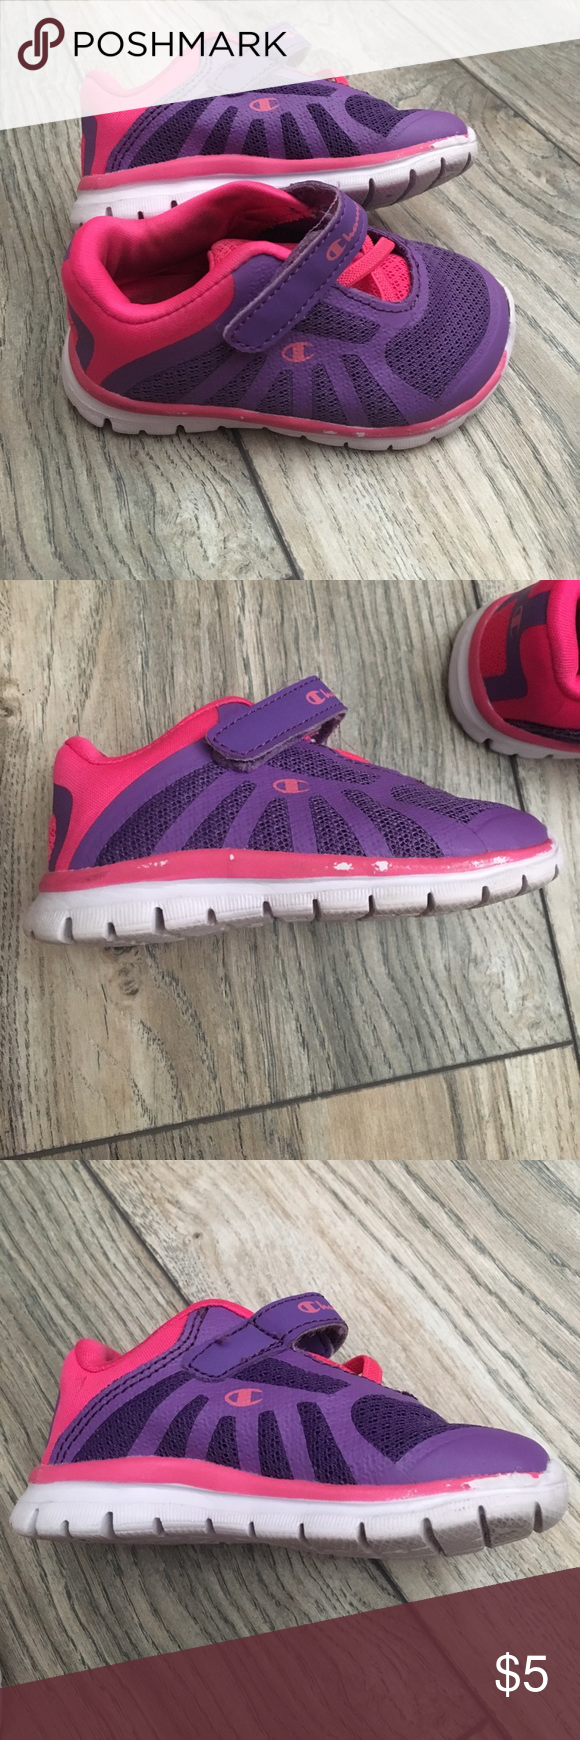 b7fb0c91c09dd Pink peeling in few places as seen in photos but besides that outside of  shoe in good shape. Size 4w. Champion Shoes Baby   Walker